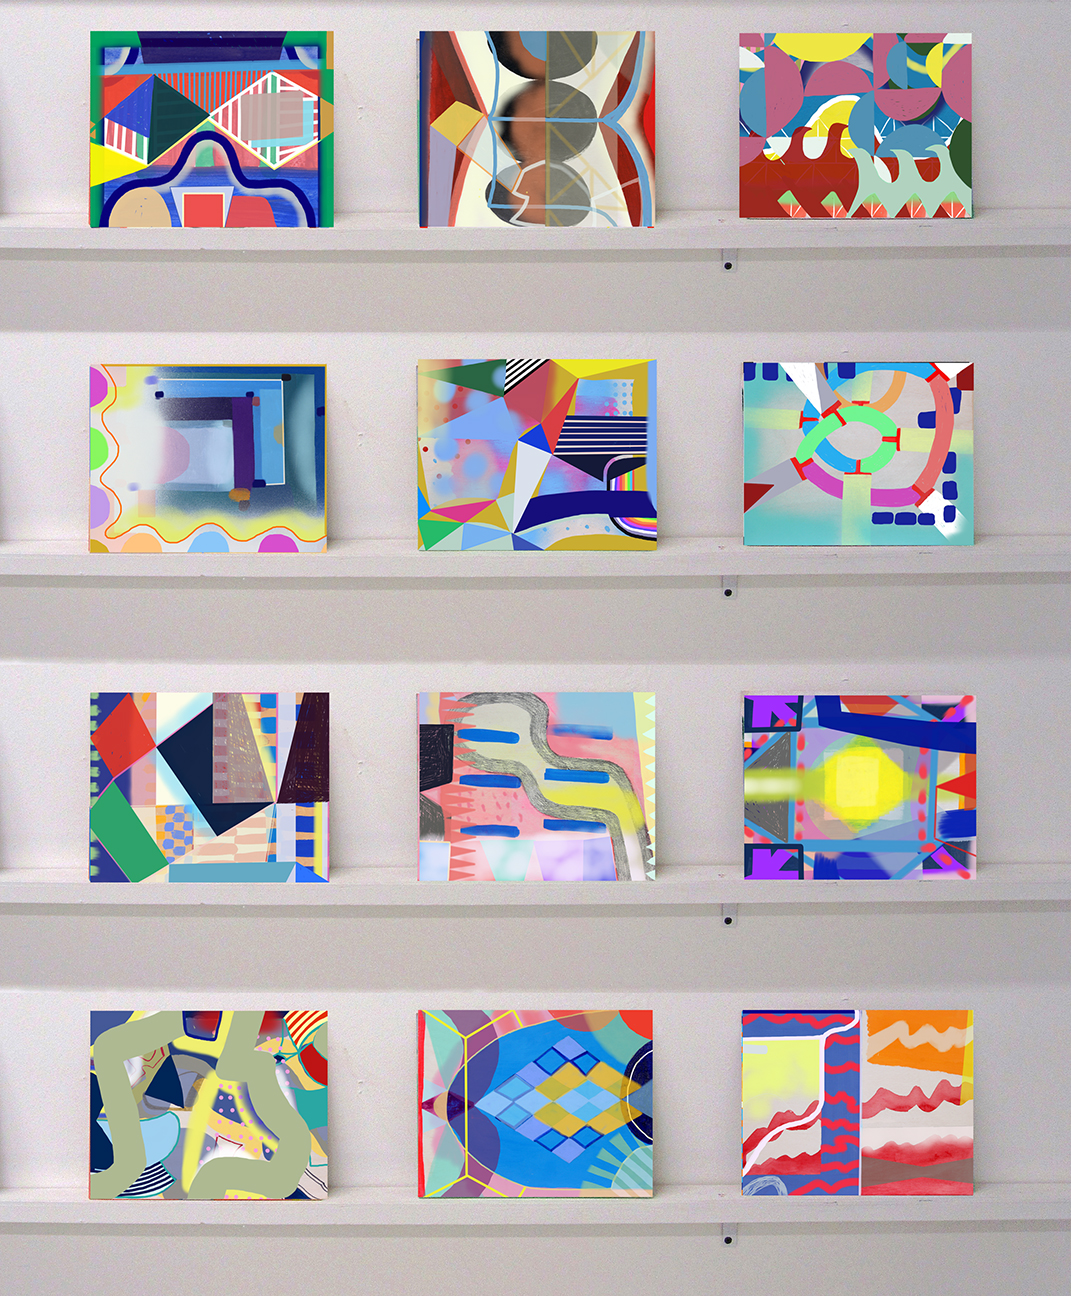 """Mark Brosseau, """"12 Small Panels,"""" 2016, acrylic, enamel, Flashe, ink, and spray paint on wood with shelves, 8 x 10 inches each"""